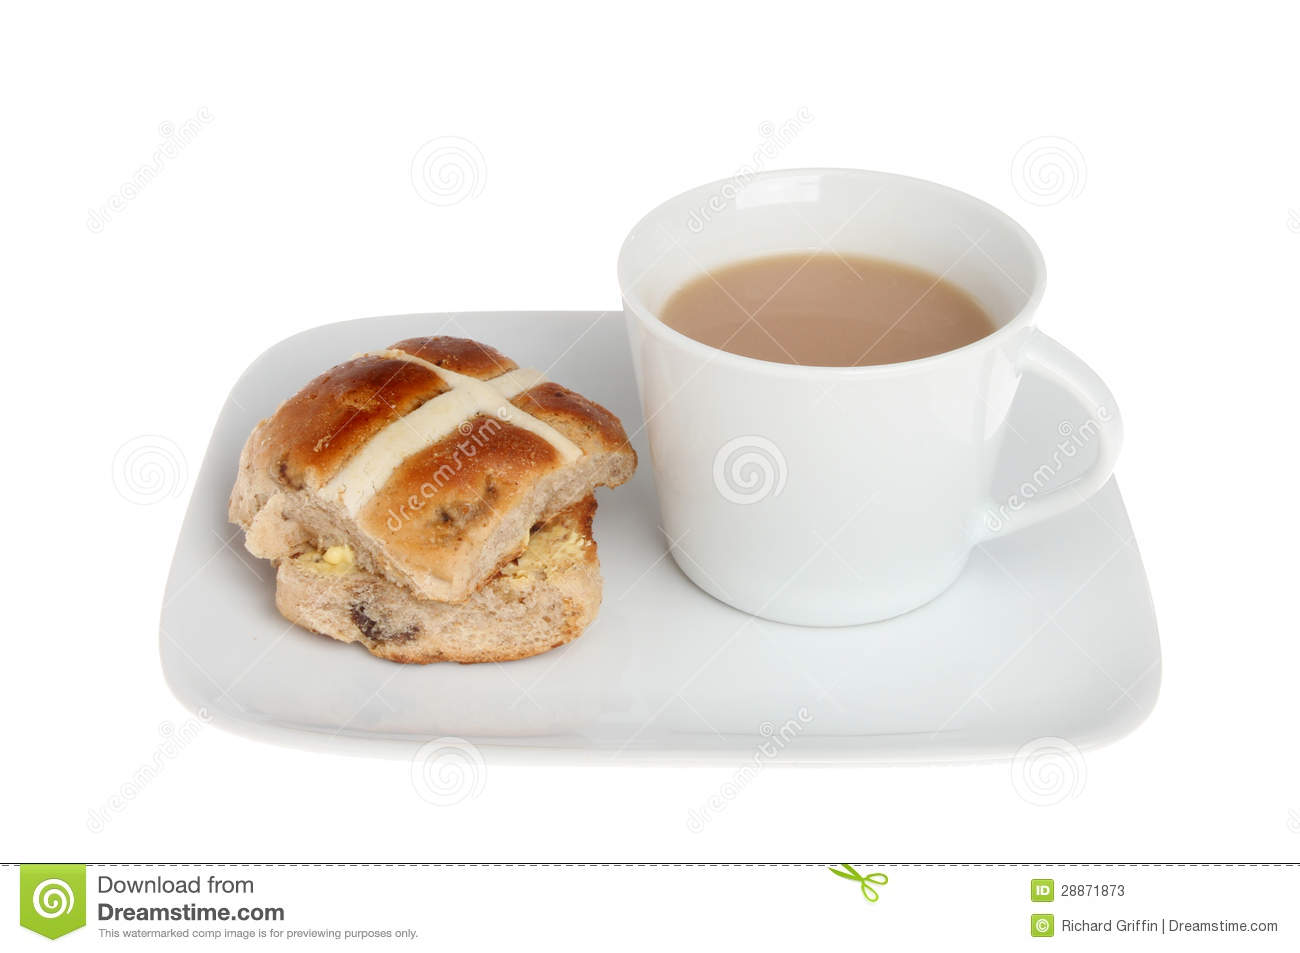 Hot cross bun and a cup of tea on a plate isolated against white.